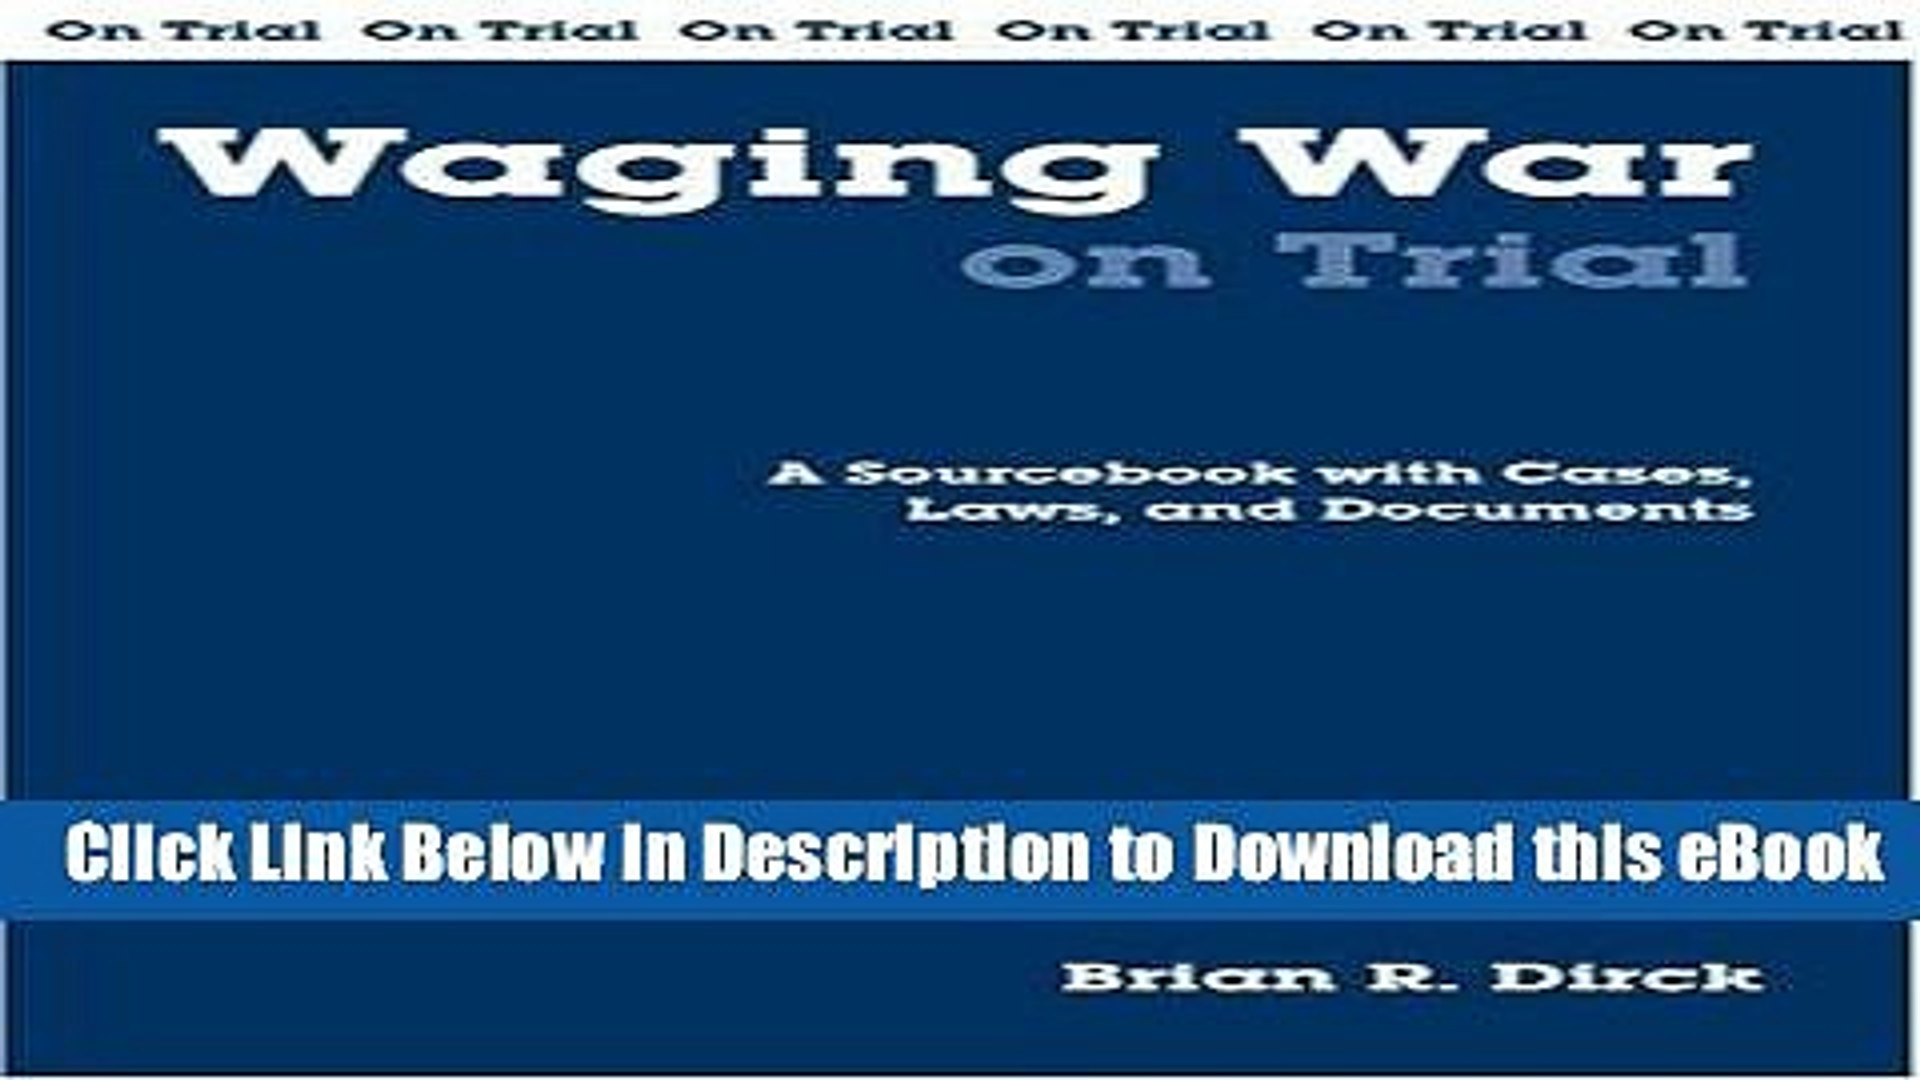 [Read Book] Waging War On Trial: A Sourcebook With Cases, Laws, And Documents (On Trial Series)